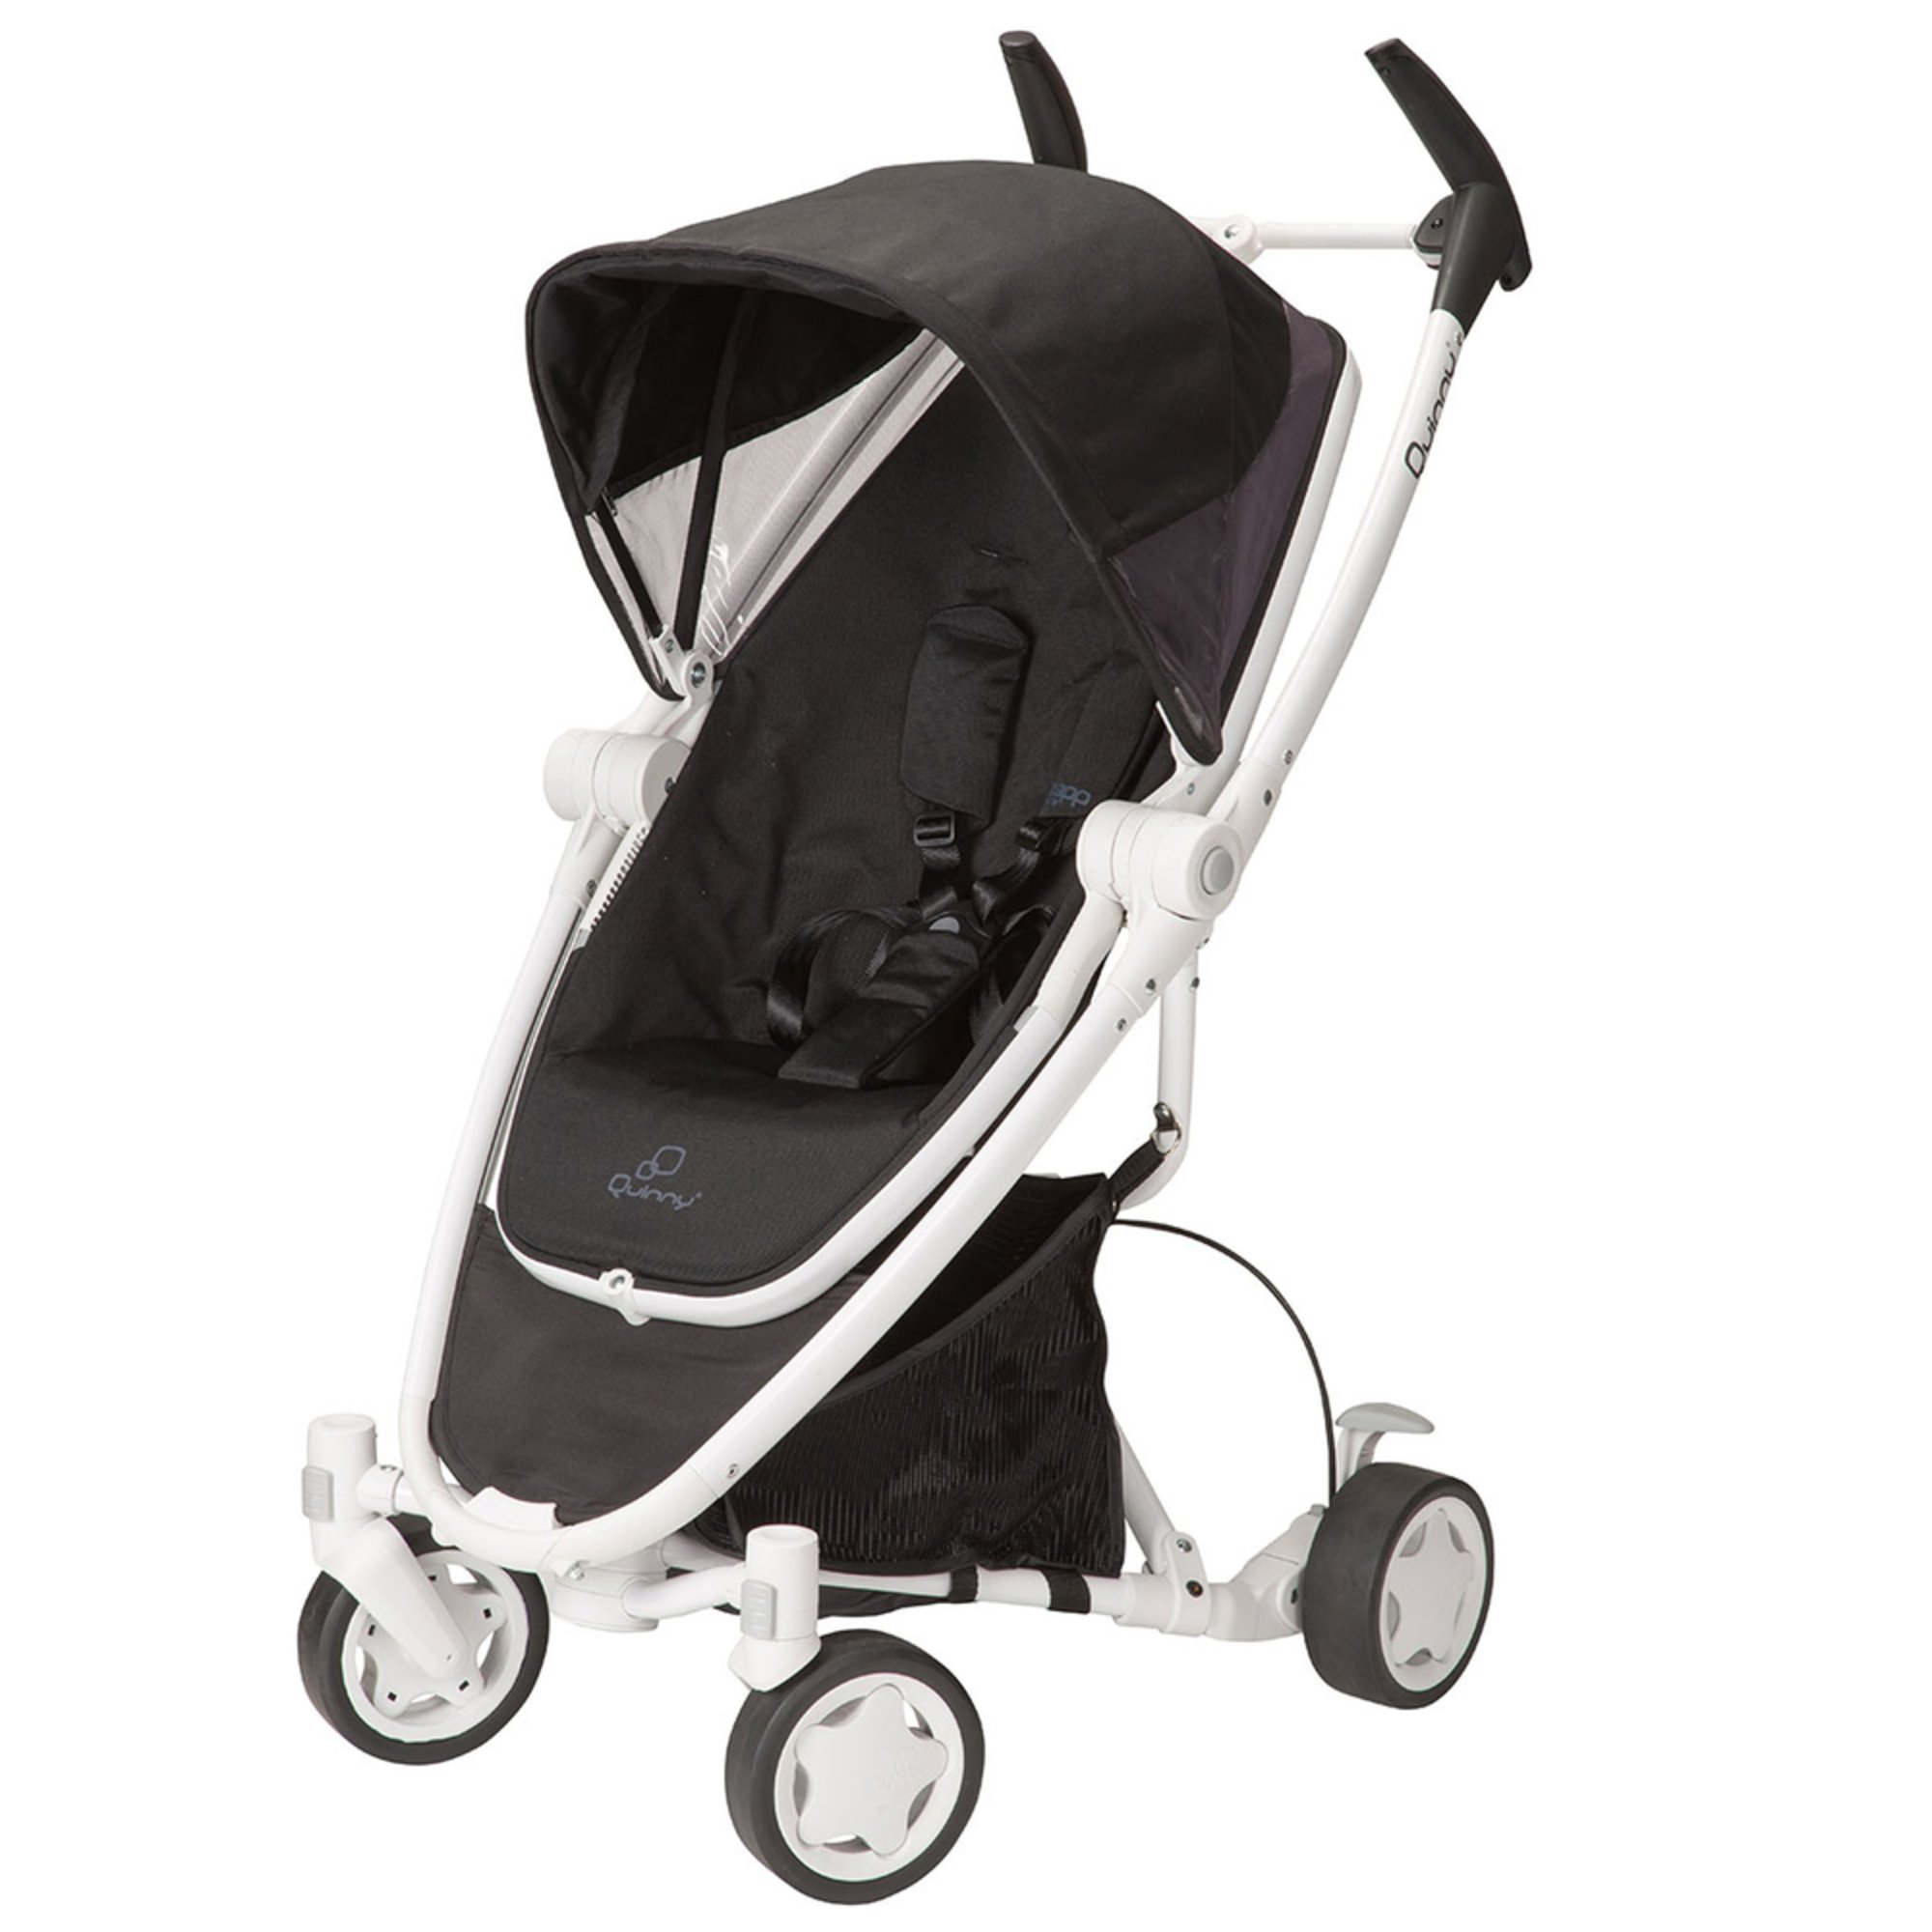 quinny zapp xtra stroller black irony full size strollers baby kids toys shop your. Black Bedroom Furniture Sets. Home Design Ideas